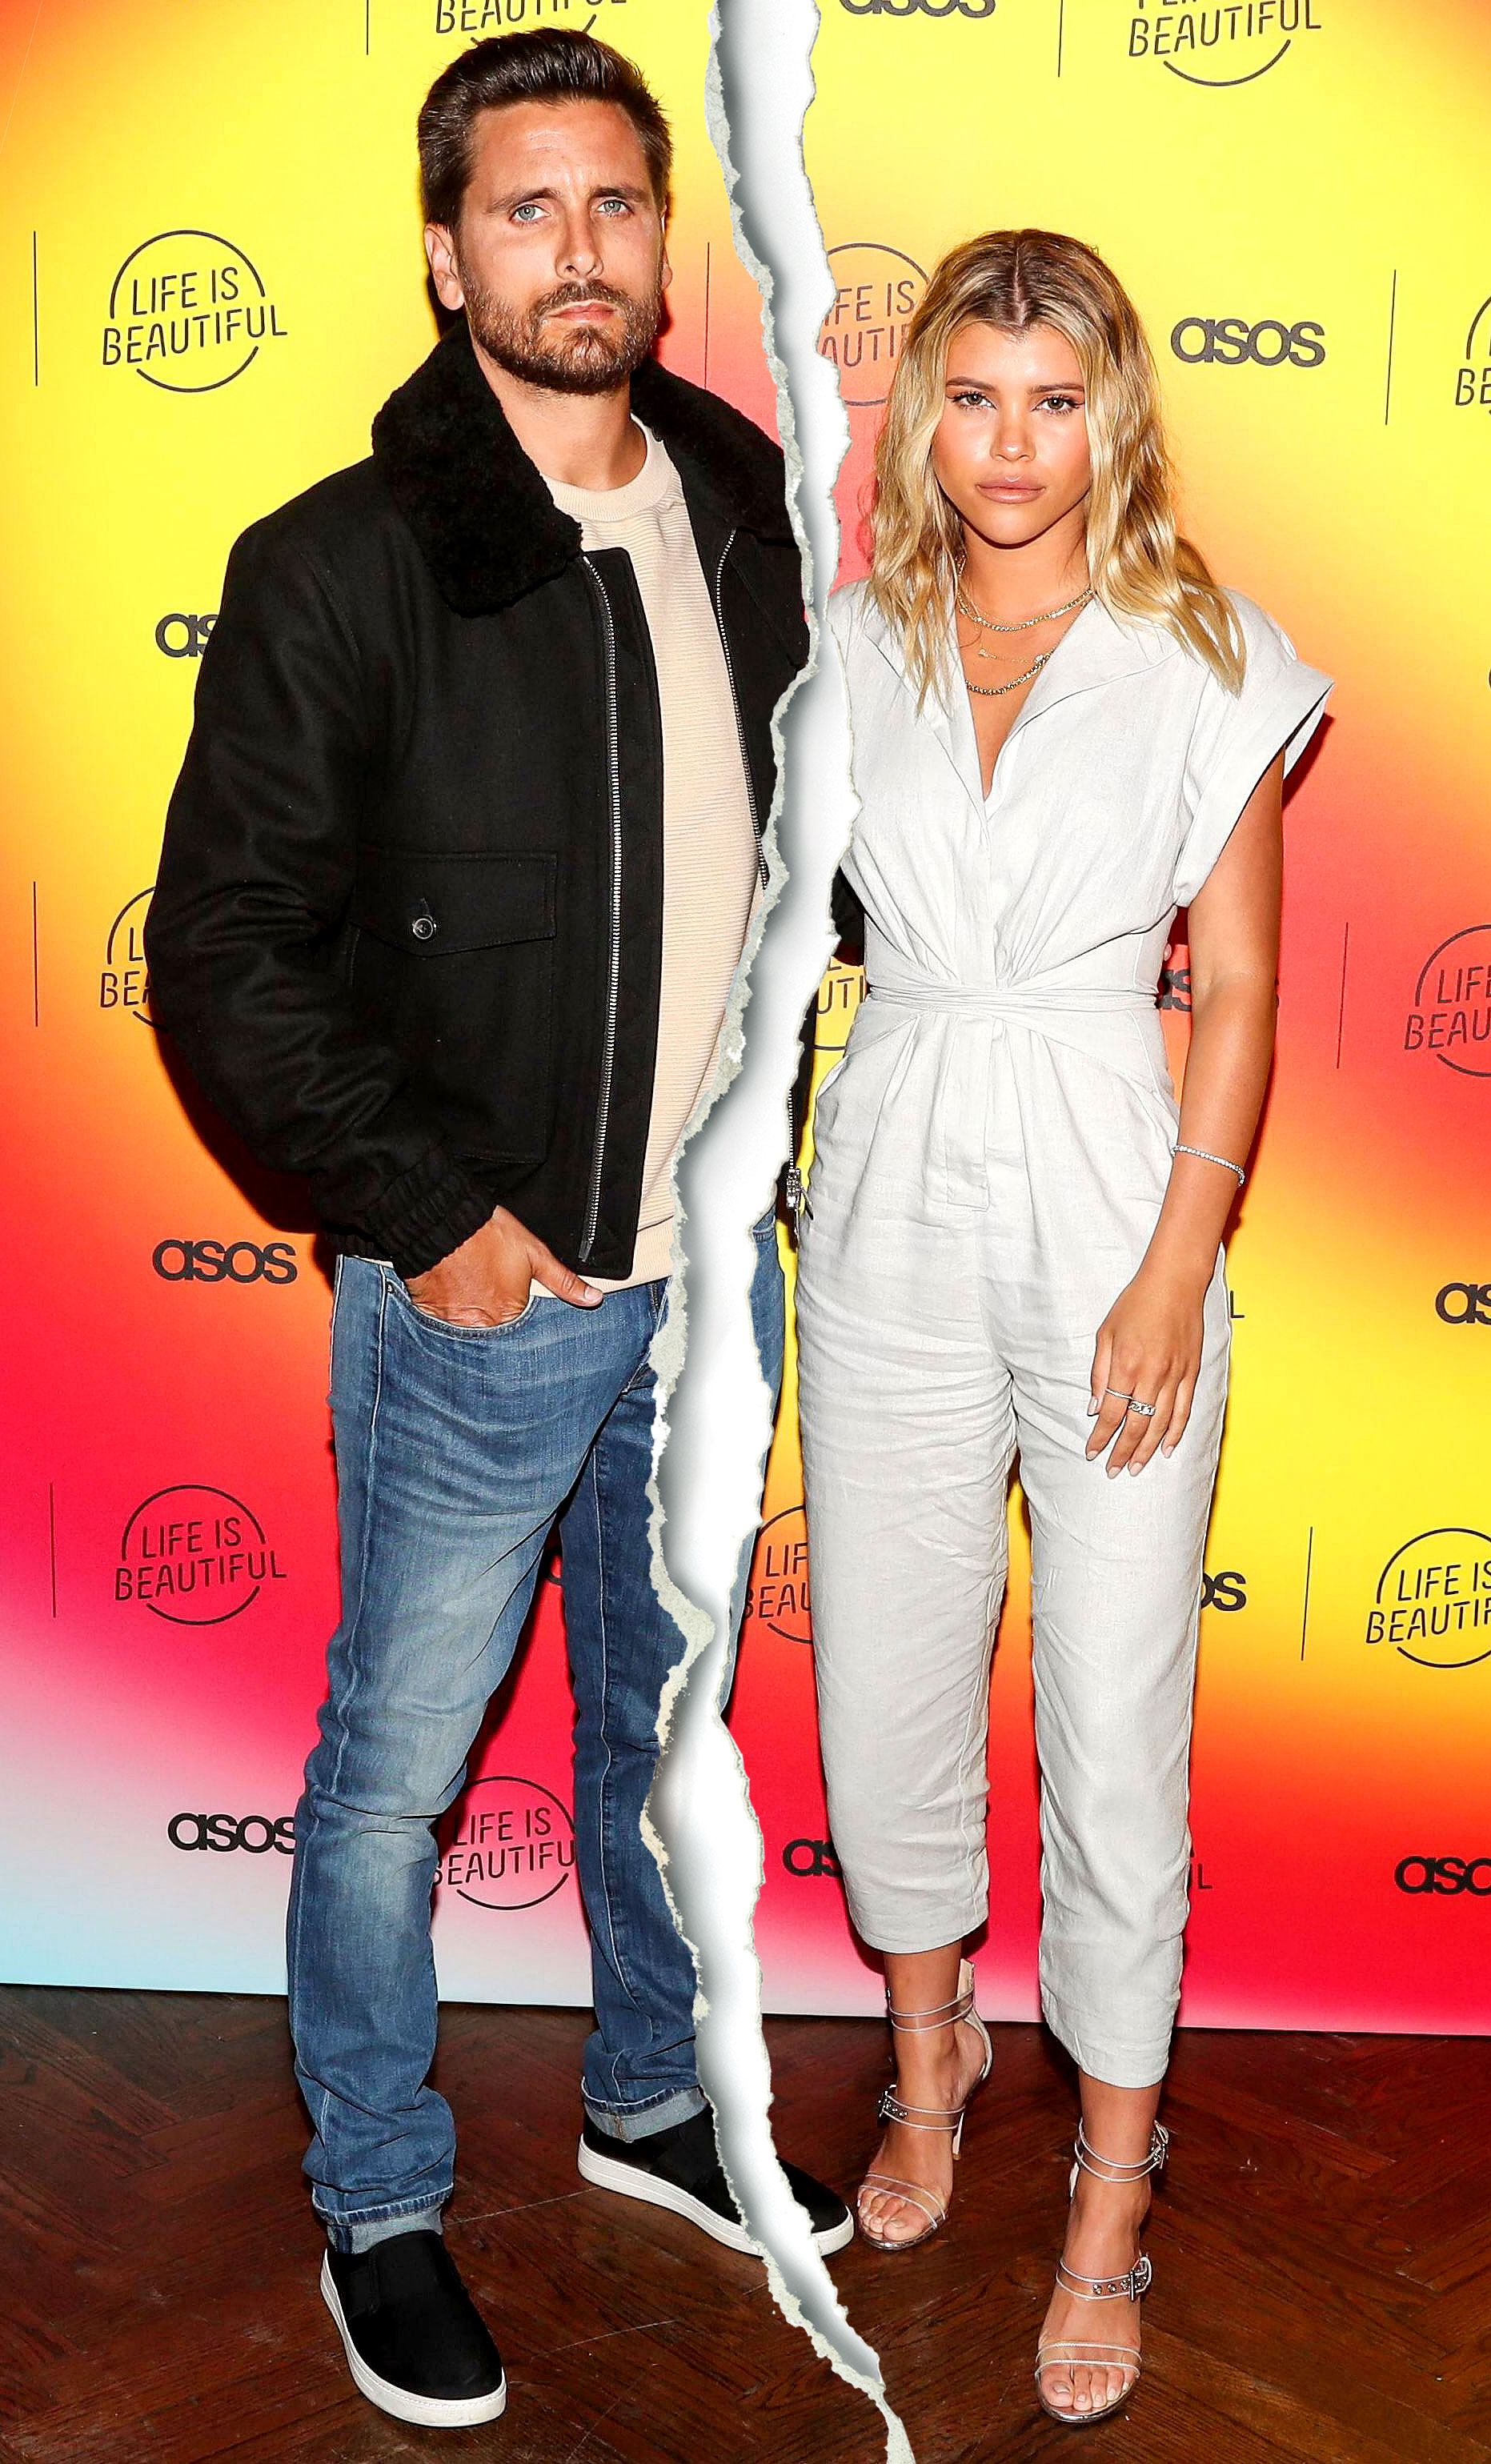 Scott Disick Sofia Richie Call It Quits After 2 Years Together